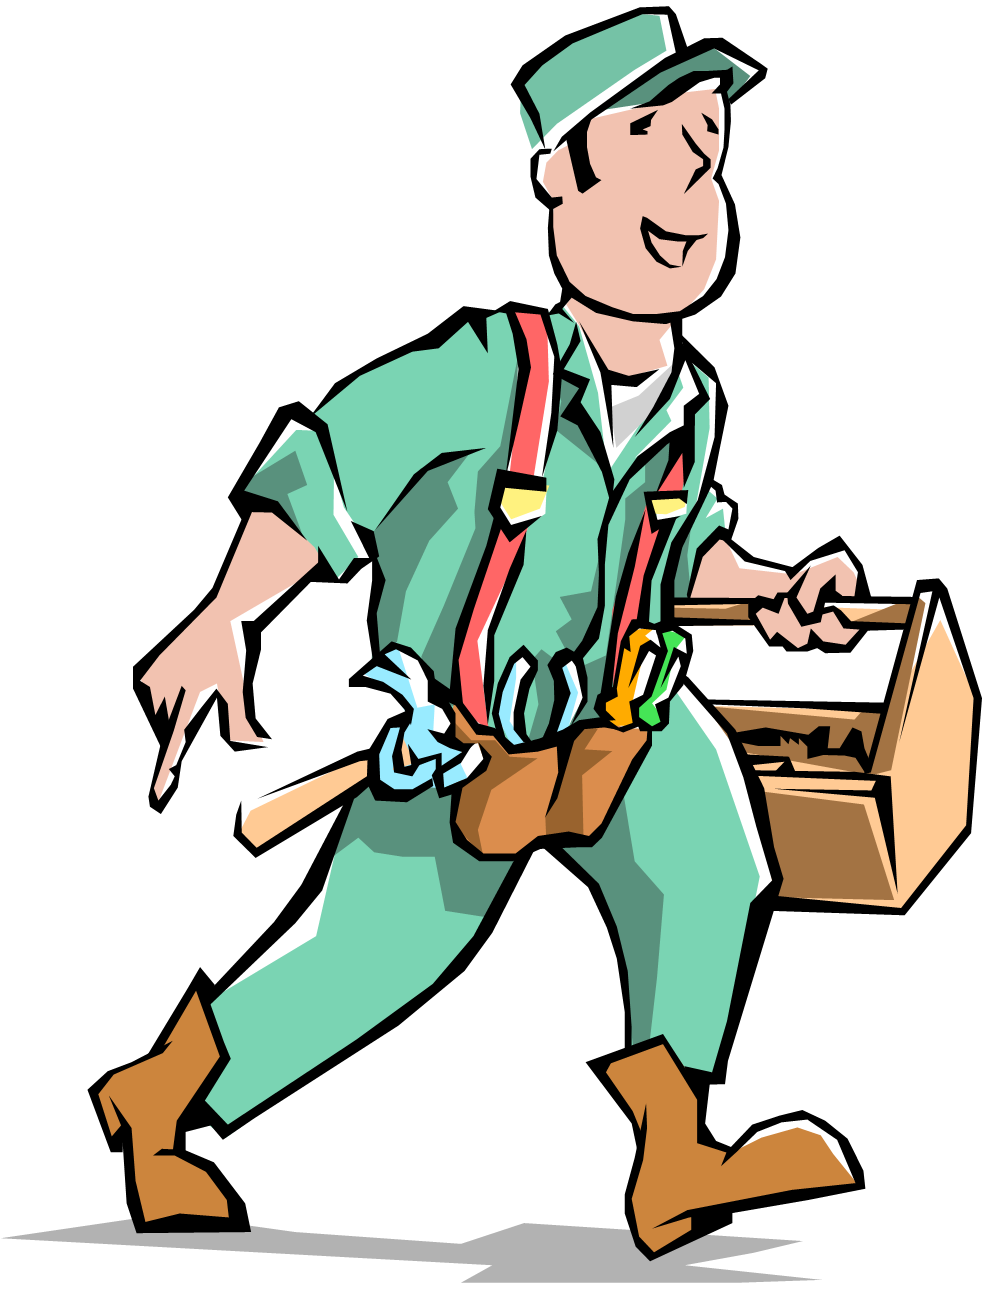 House builder guy clipground. Mechanic clipart hotel maintenance